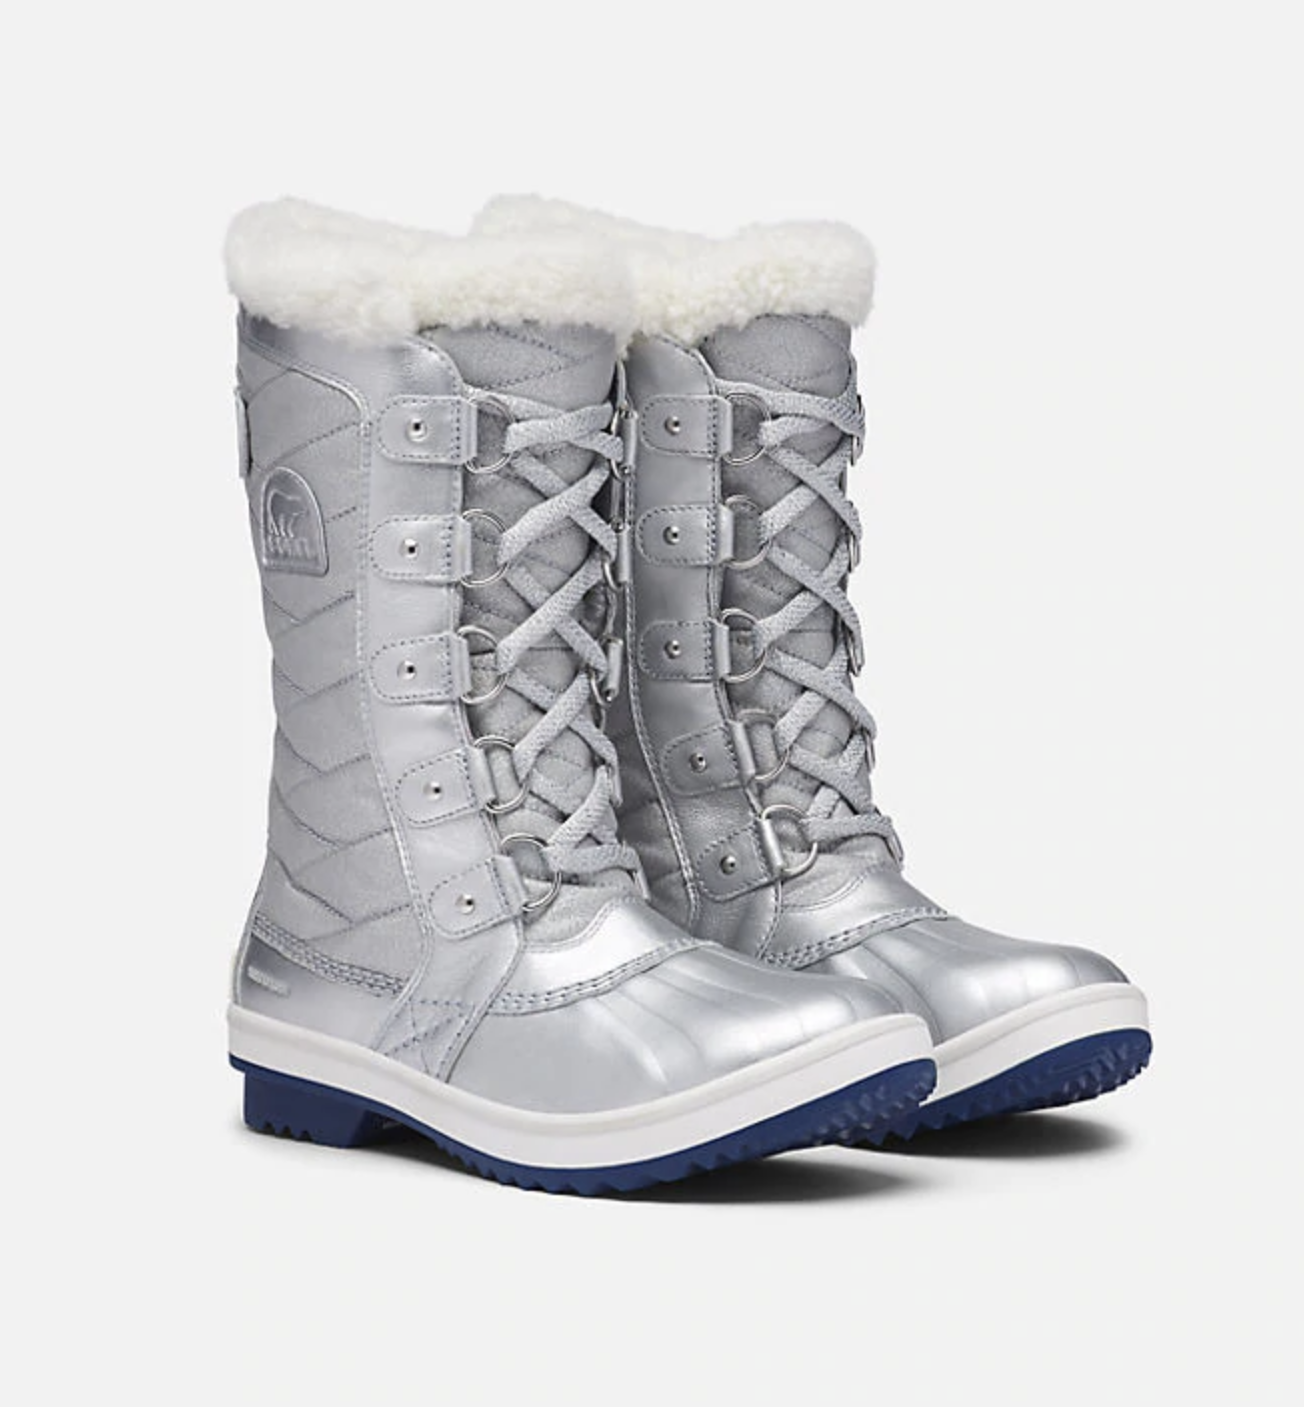 Disney x Sorel Frozen 2 Boot